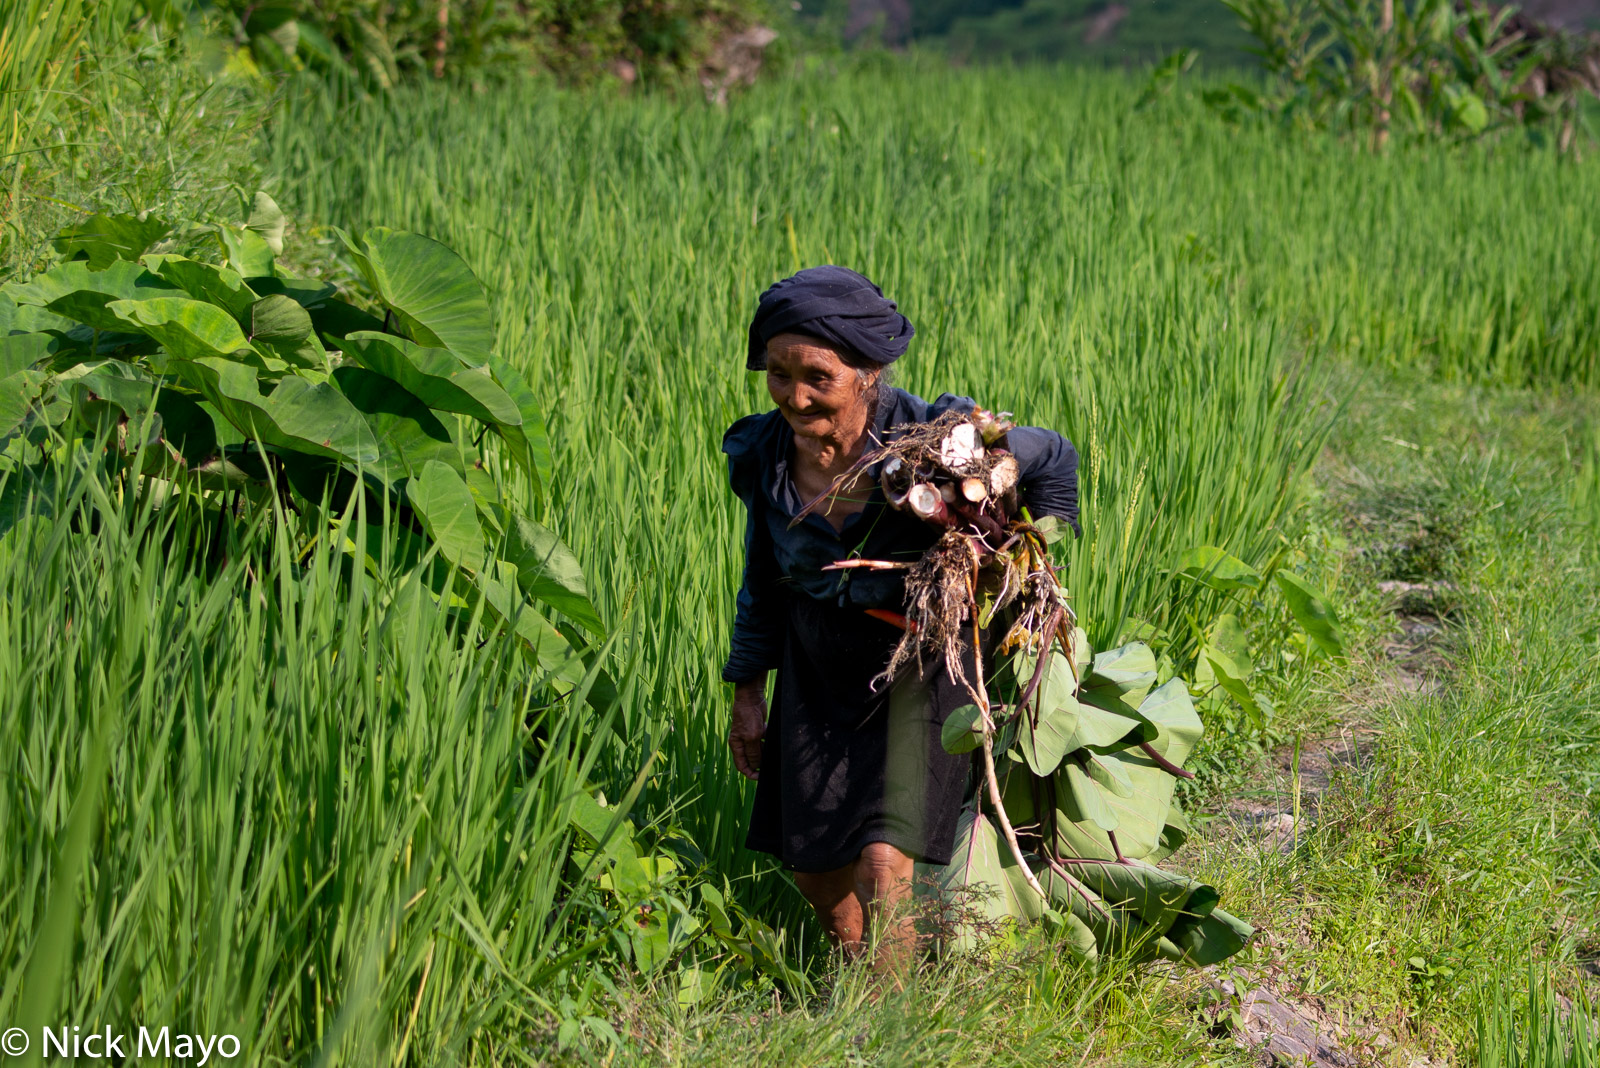 An older La Chi woman from Ban Phung returning home through the paddy rice fields with her just harvested root vegetable.